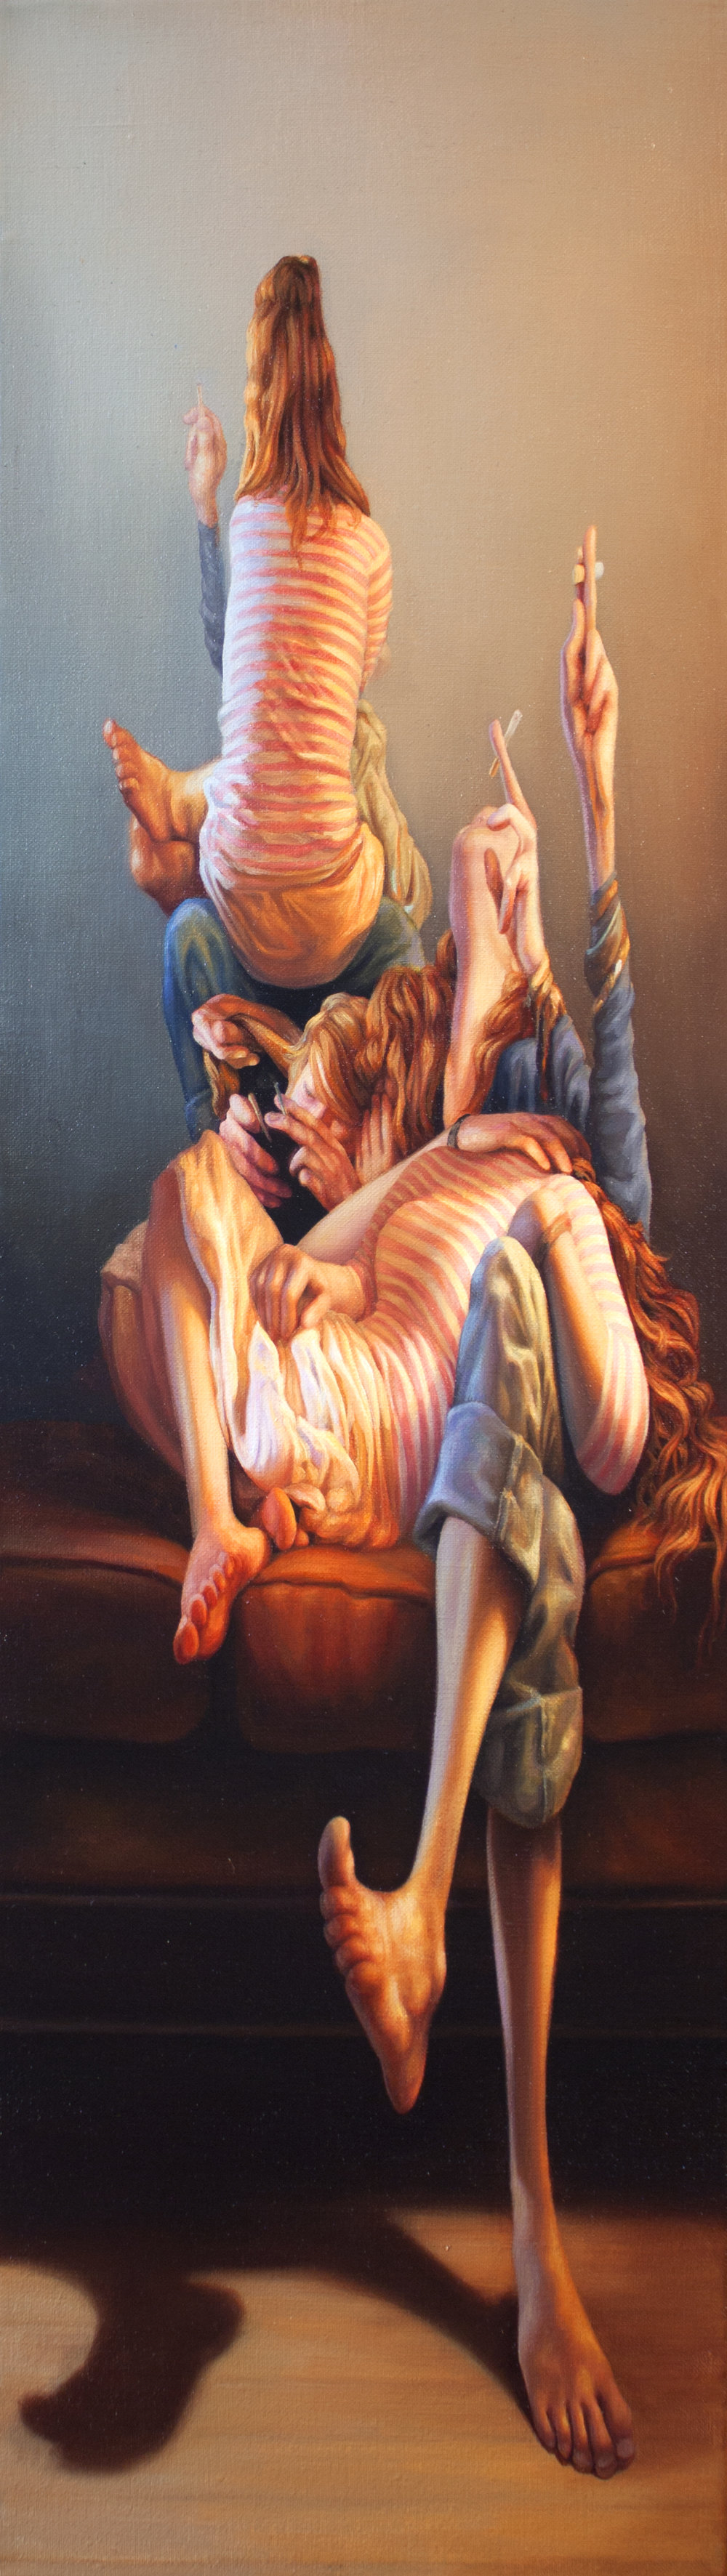 "Smoking Redheads  8"" x 28""  Oil on Linen  2016"